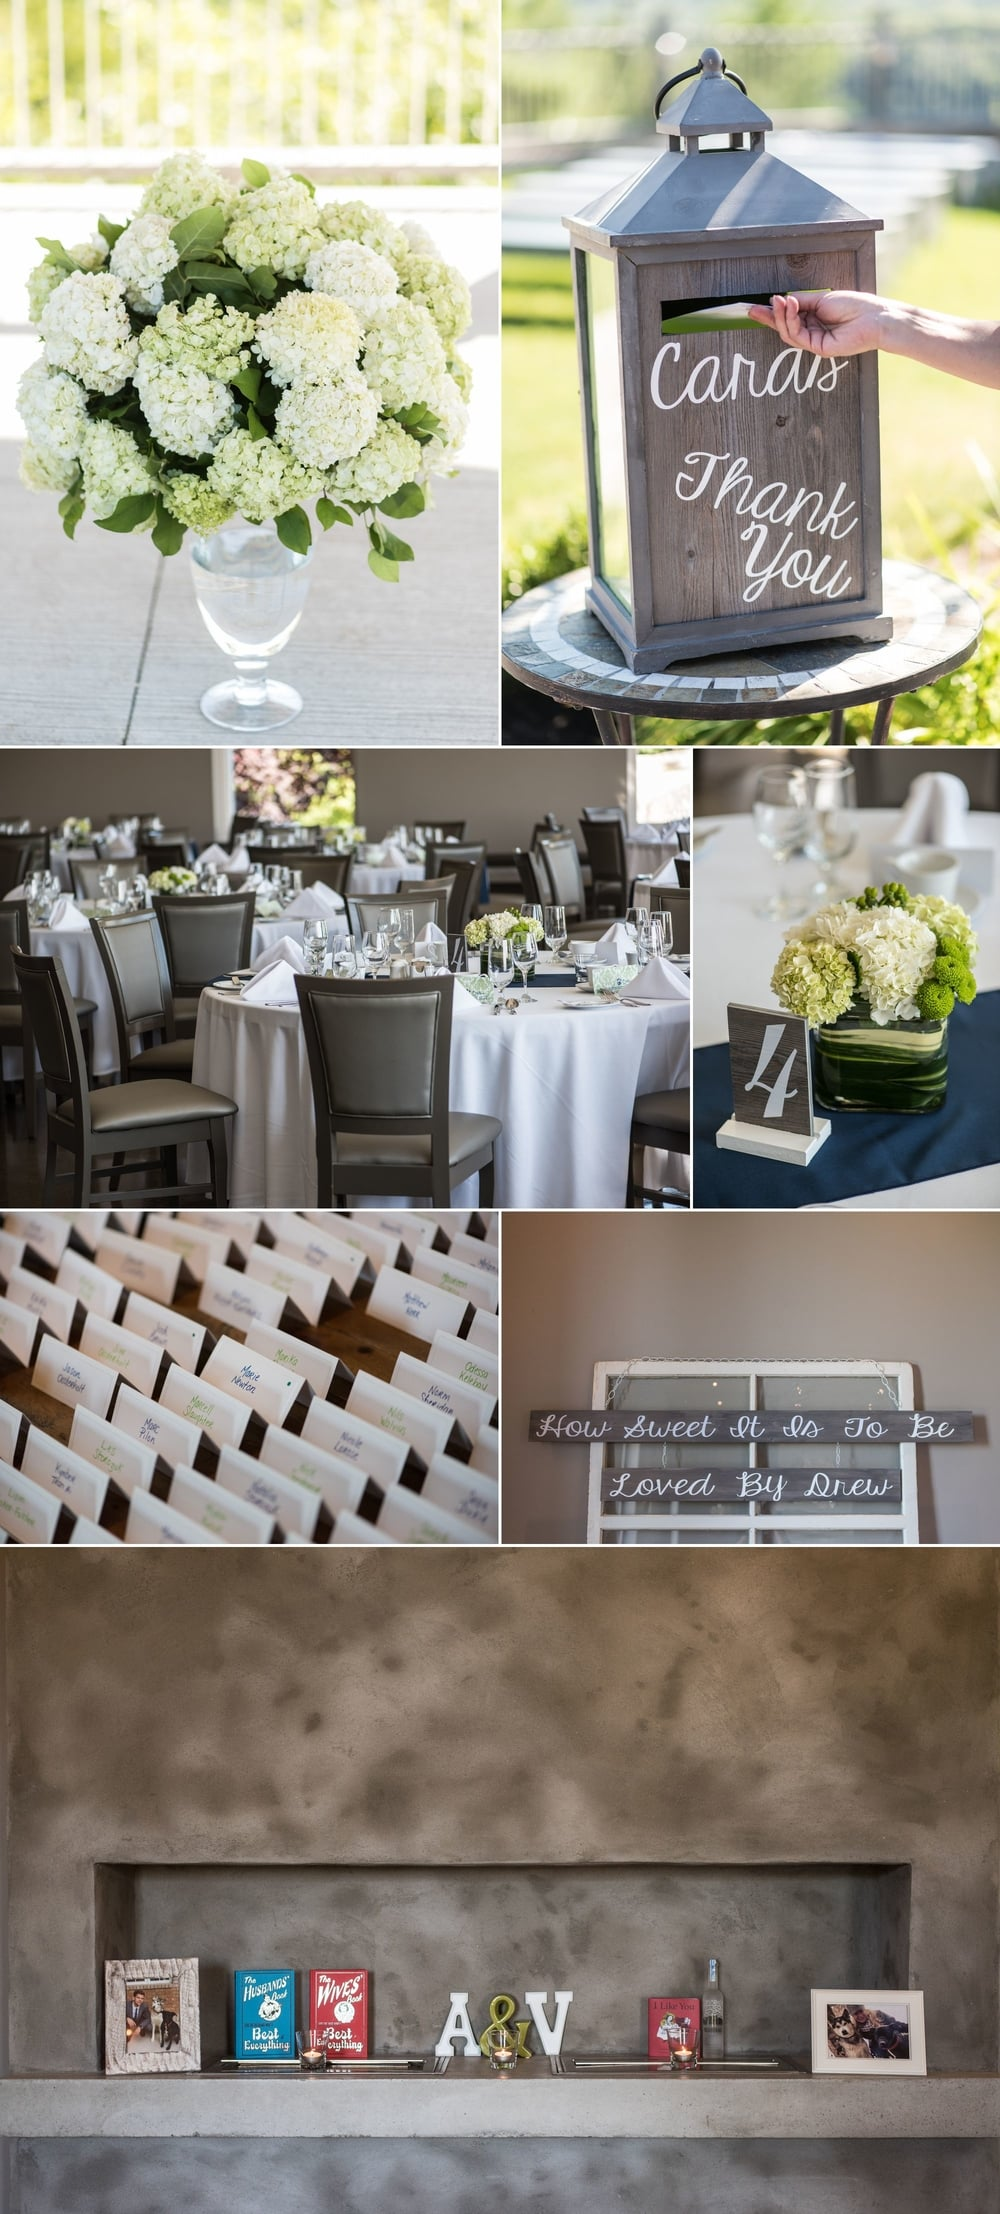 Wedding decor and details at Le Belvedere